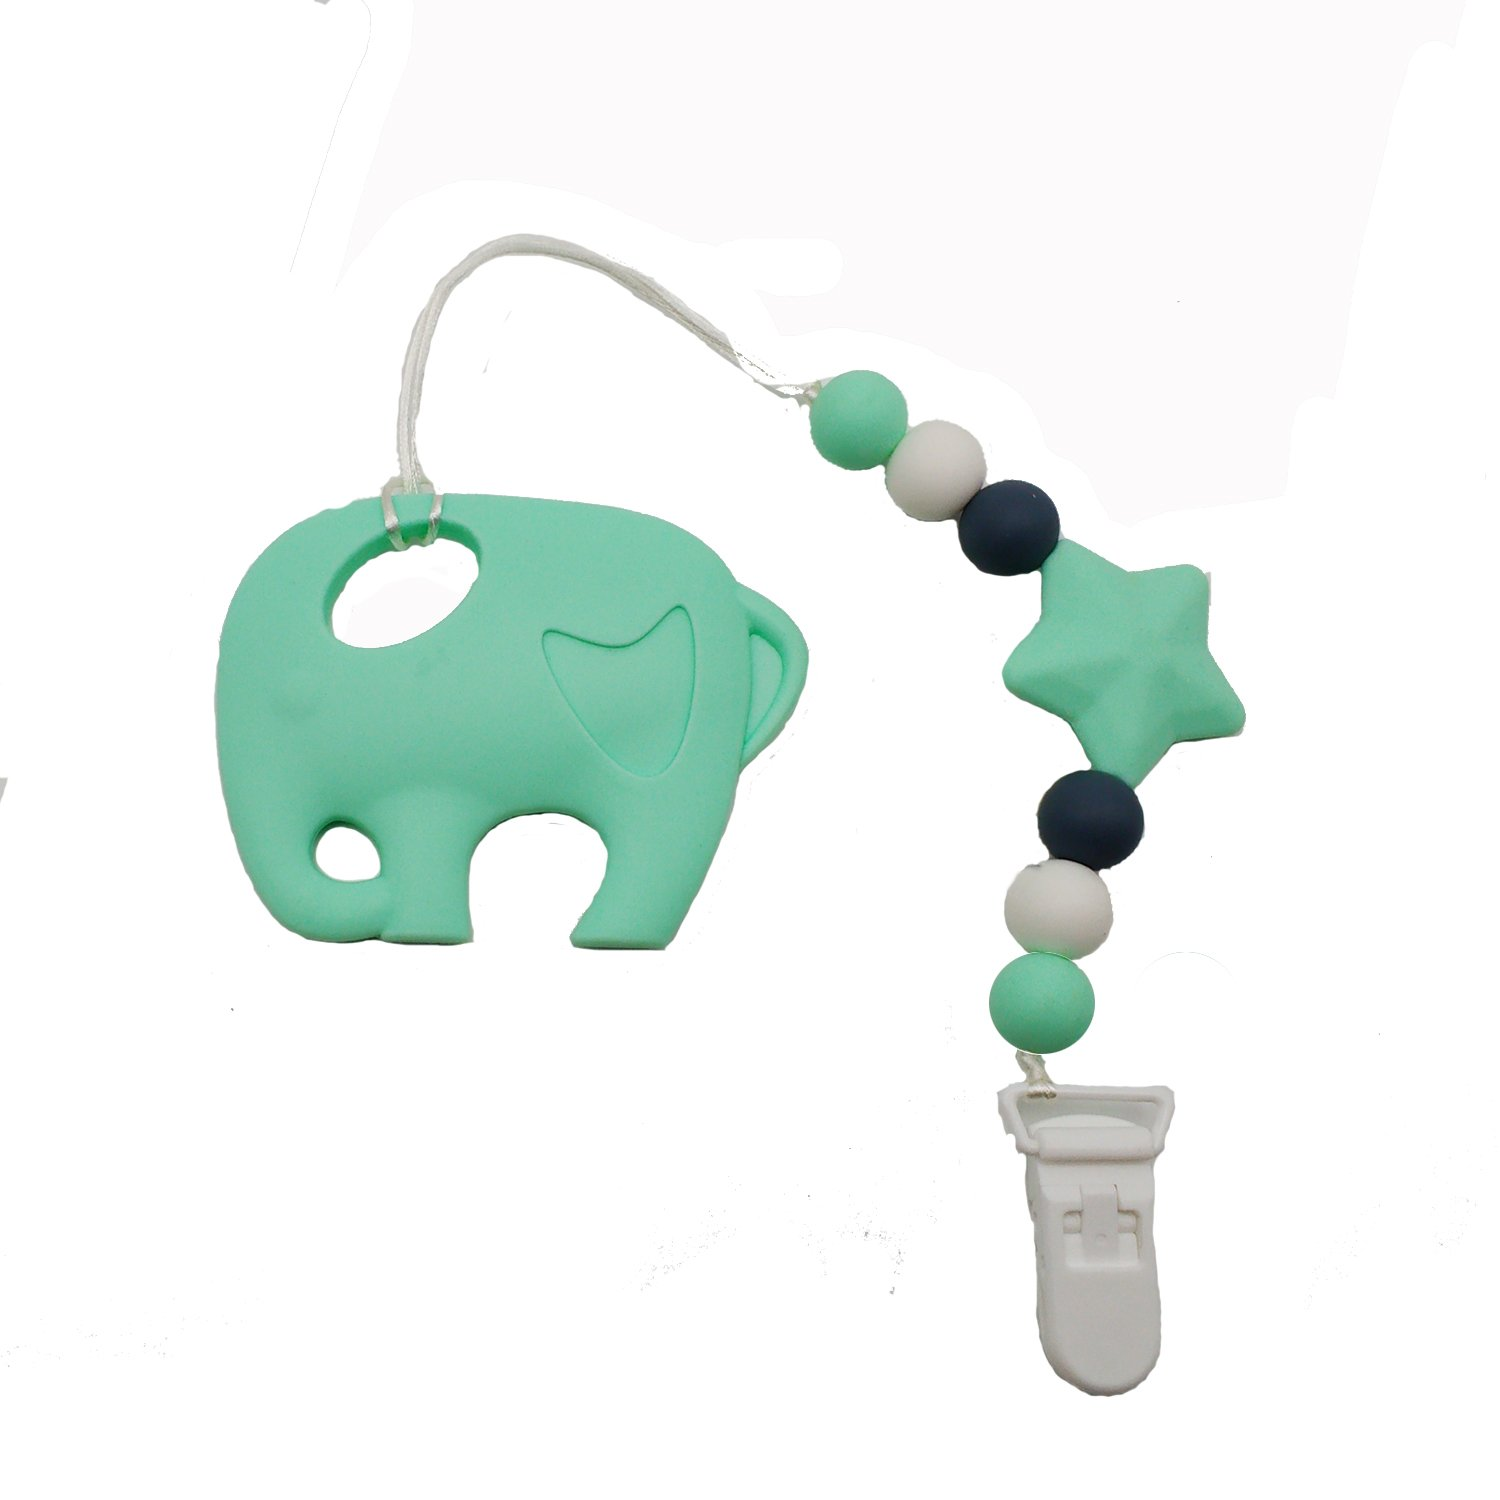 INCHANT 2 in 1 Elephant Silicone Teething Beads and Pacifier Clip for Girls and Boys with 100% Safe Chewable Silicone Teethers - Toddler & Baby Teether Toy E-Thriving